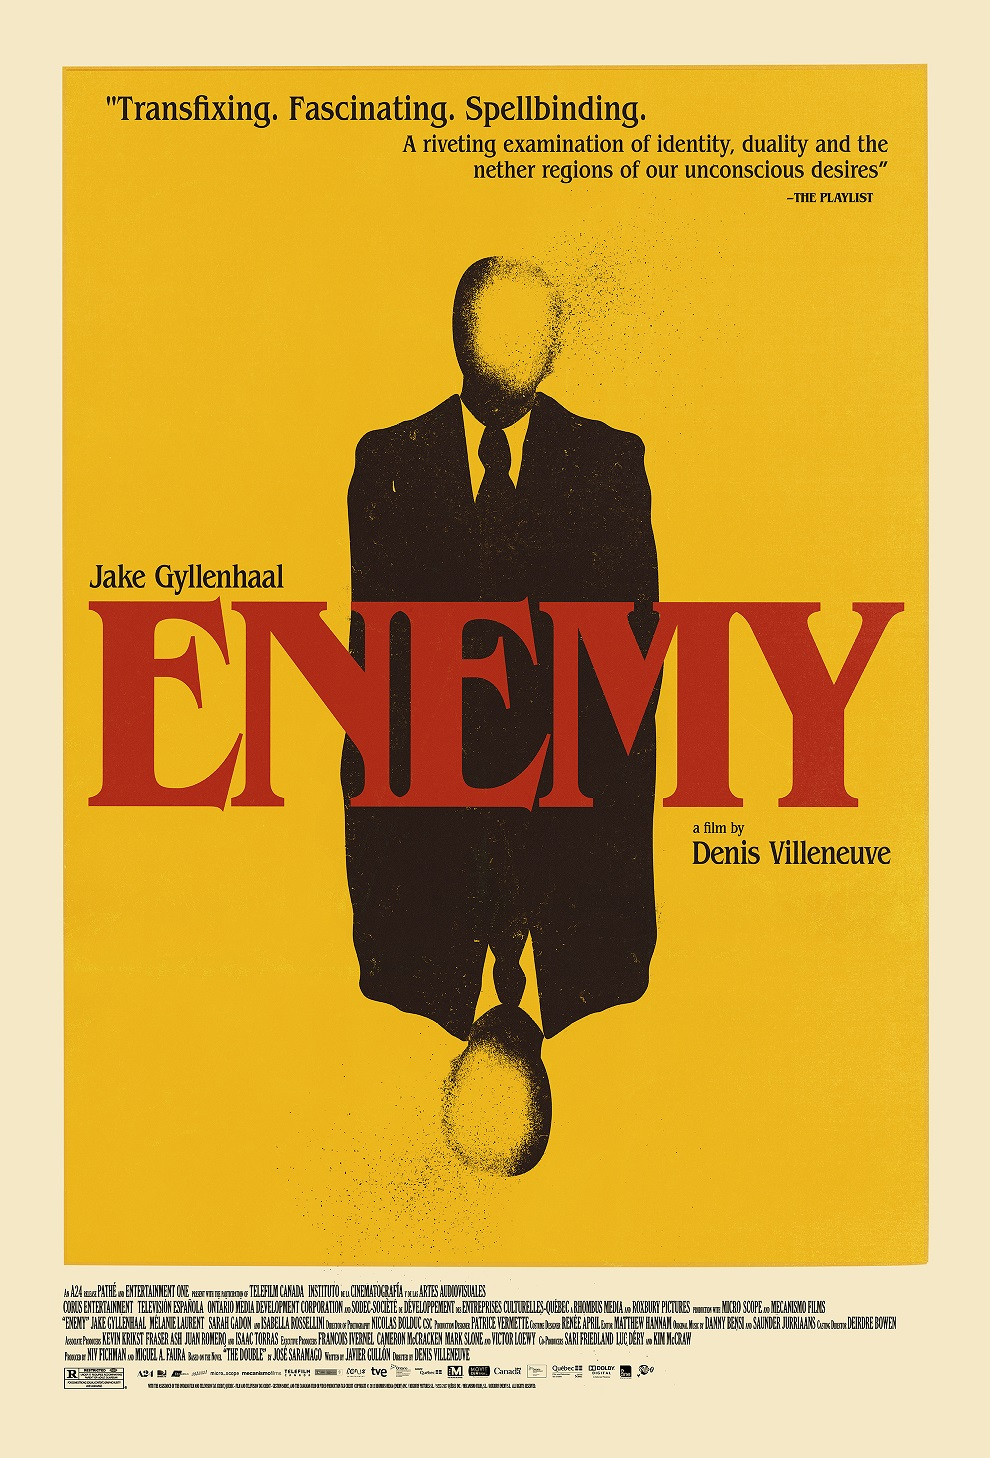 ENEMY OS LAYERED v2 Enemy, Starring Jake Gyllenhaal, Premieres in New York